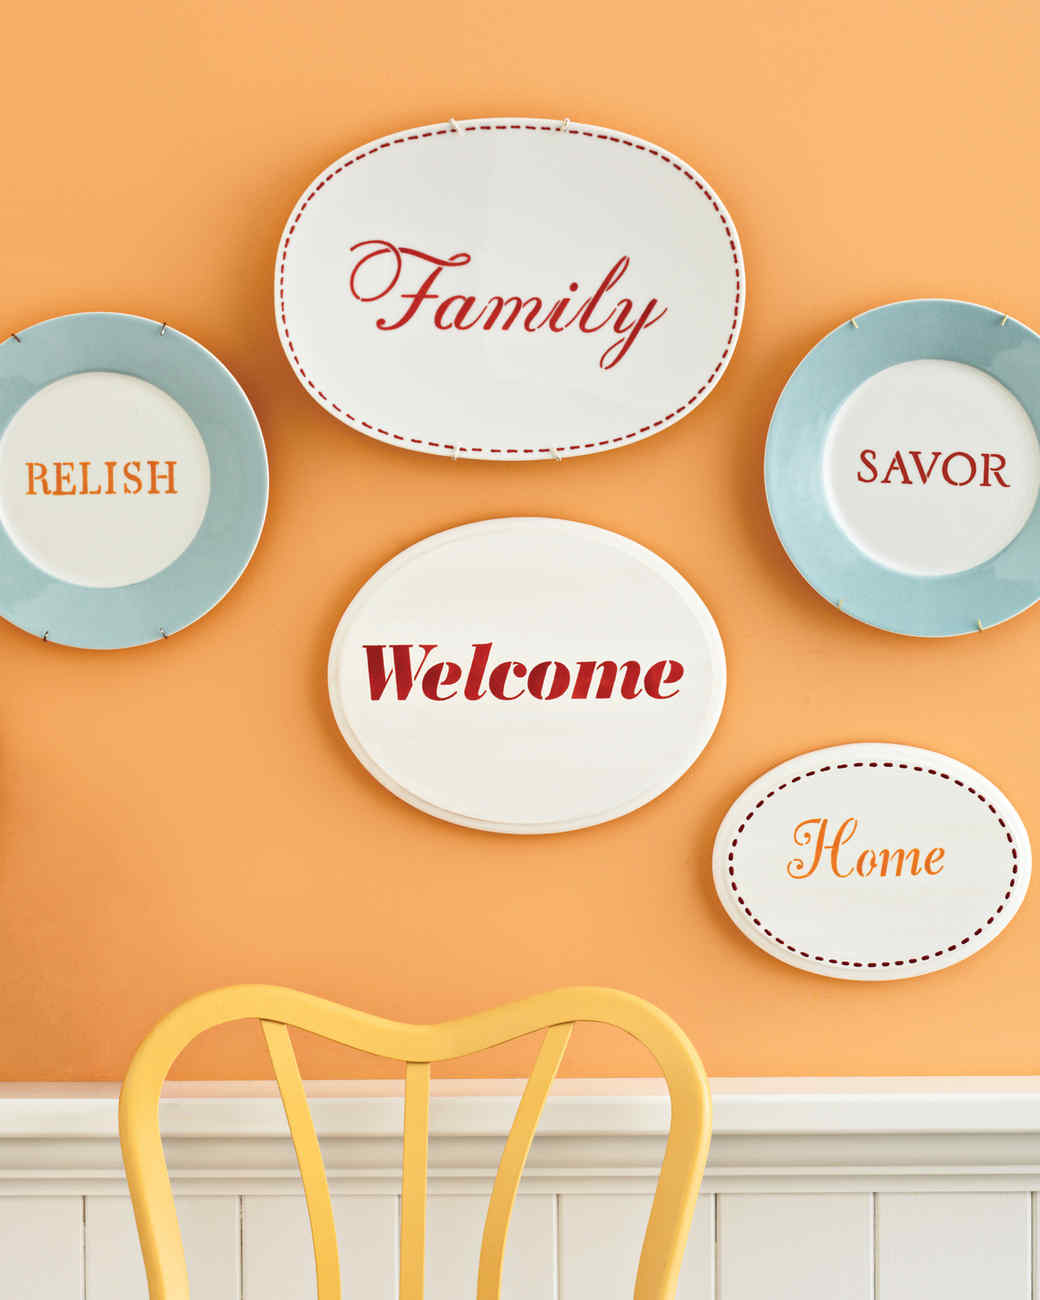 Martha Stewart Craft Paint Inspirational Plates